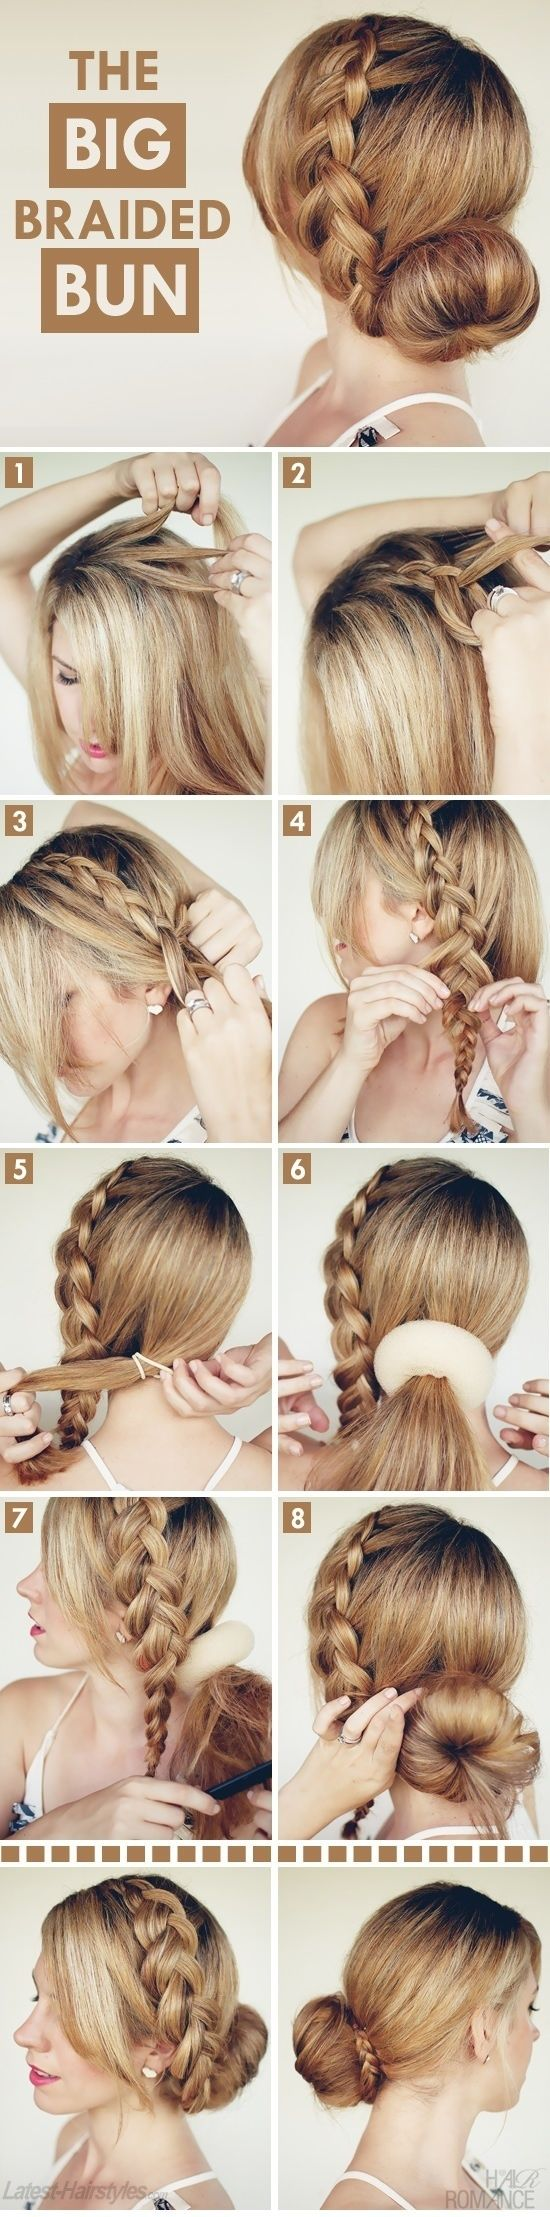 best long and thick images on pinterest hair hairstyles and